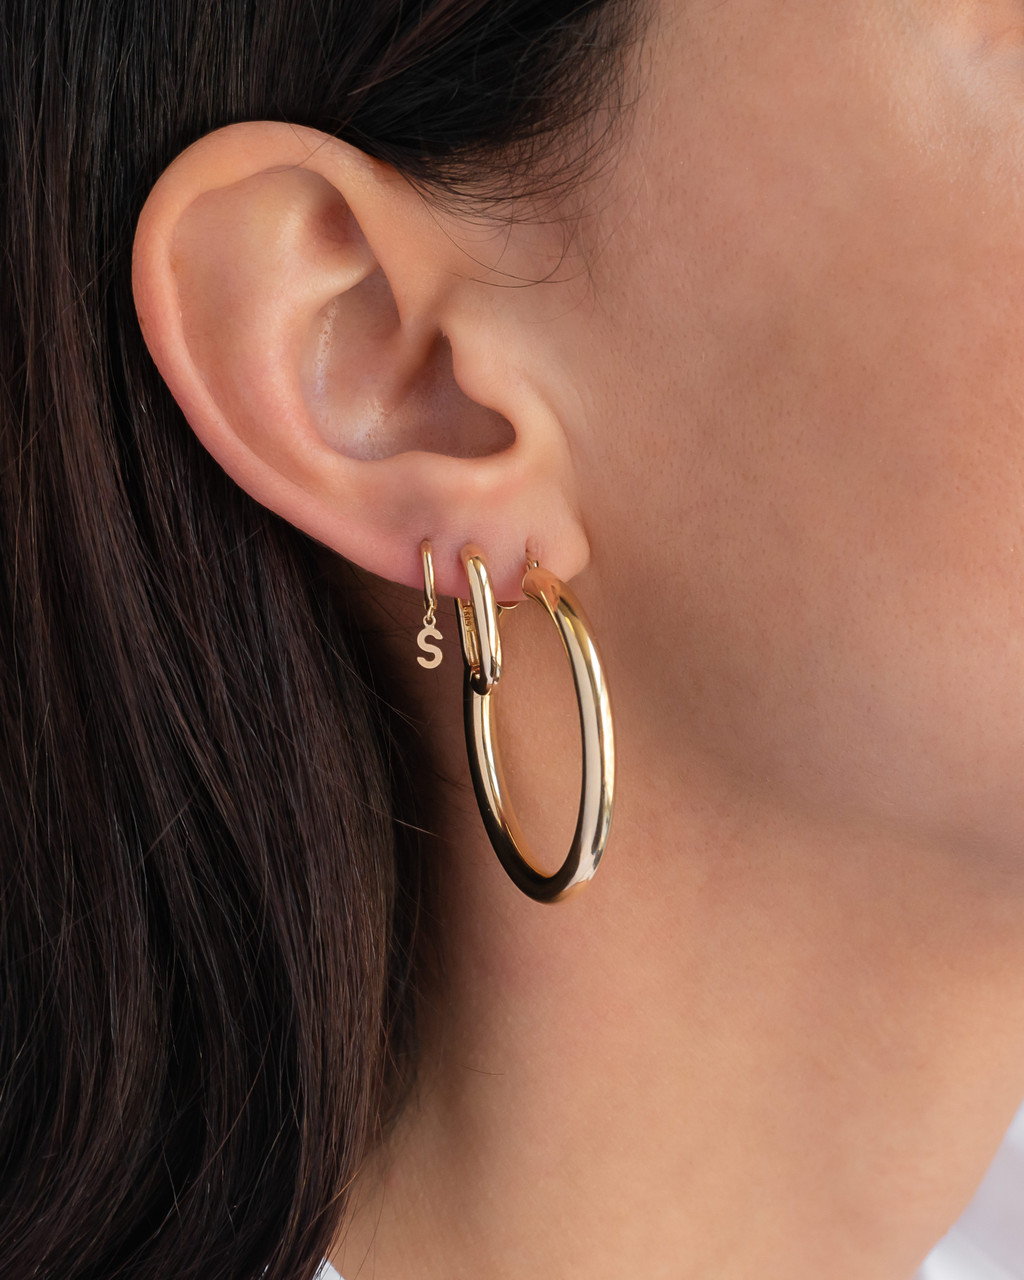 14k Gold Small Hoop Earrings with Letters